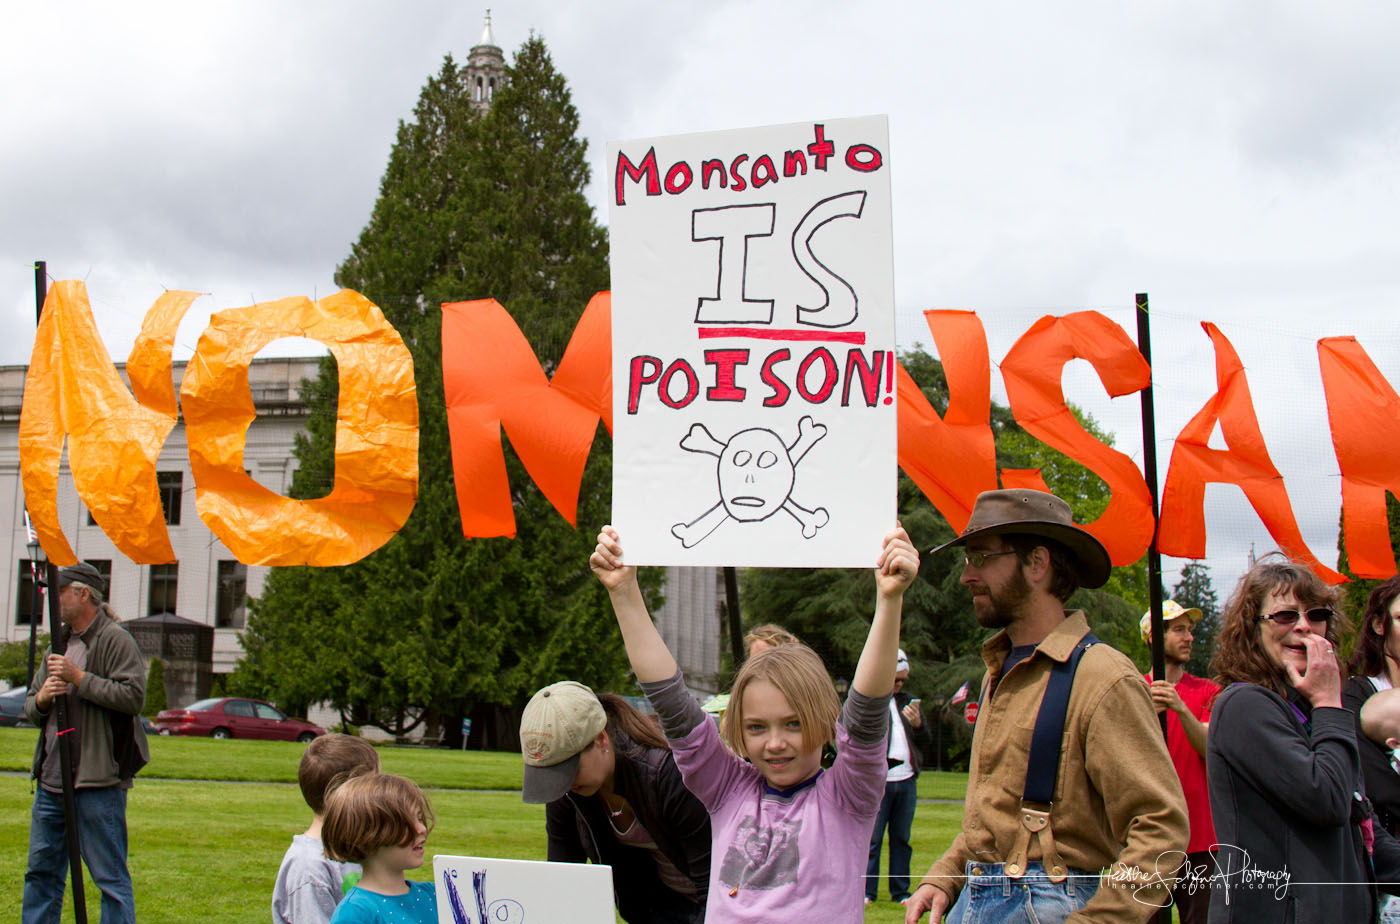 march-against-monsanto-heather-schofner-4